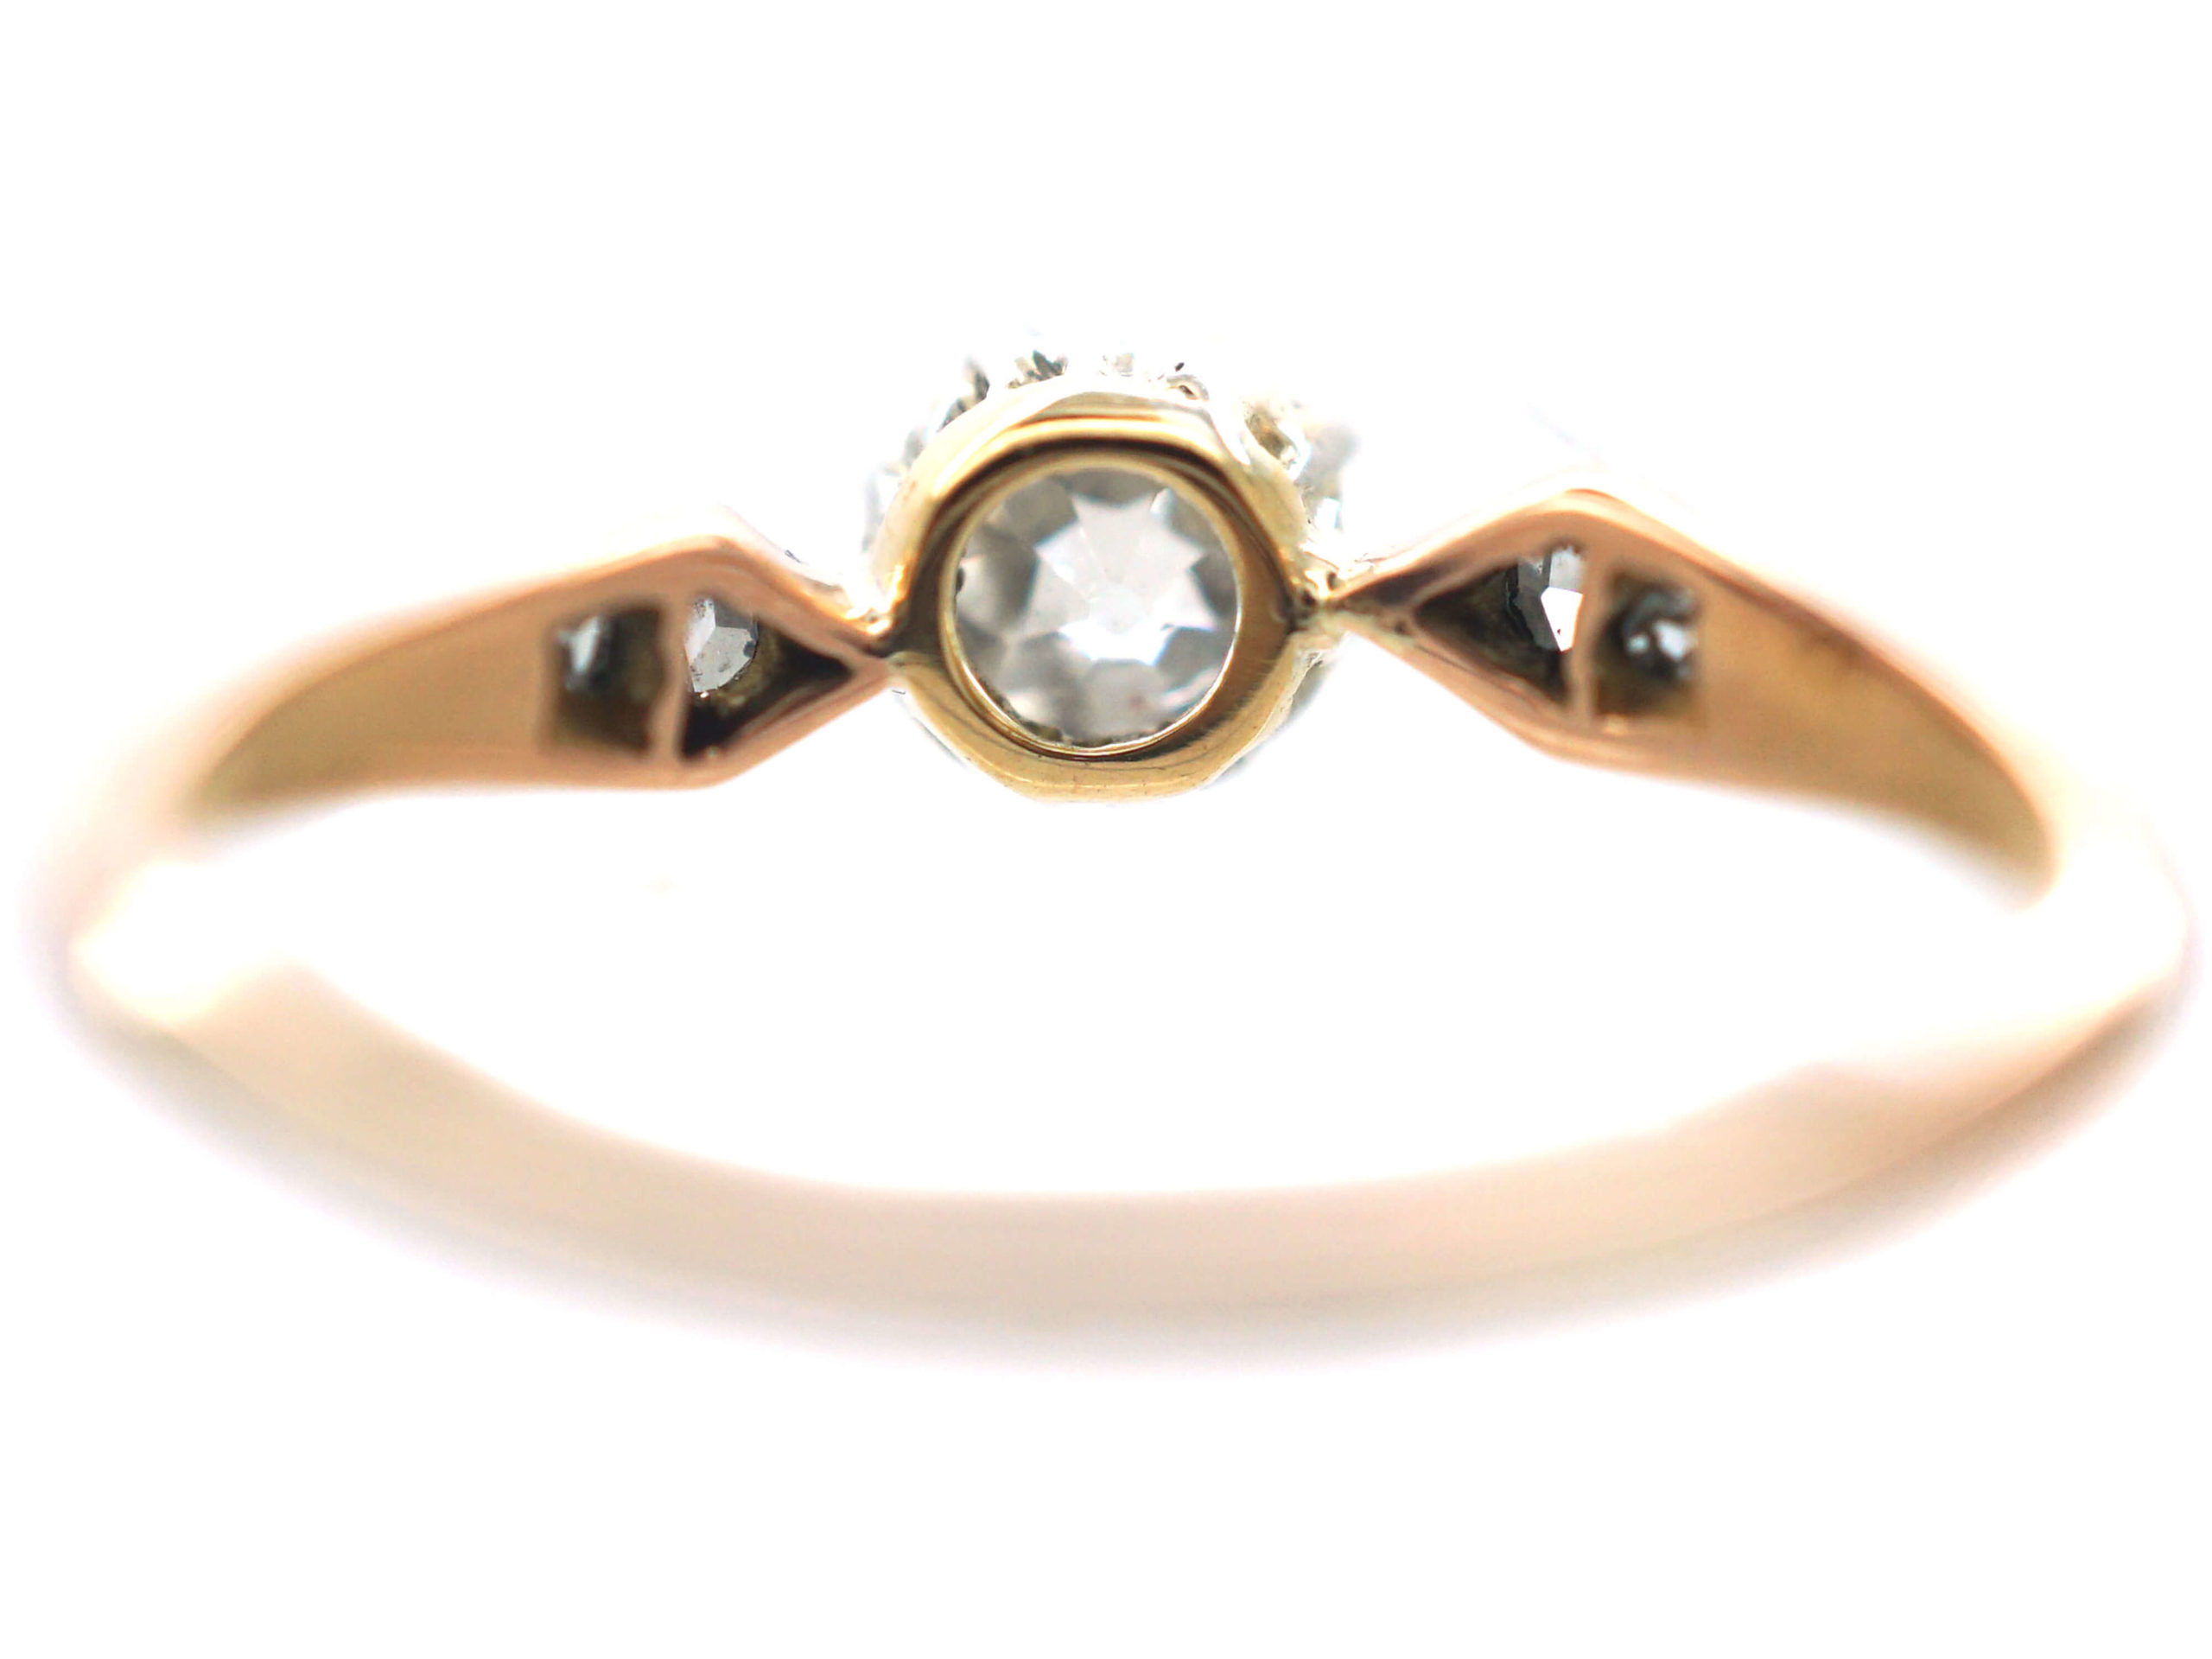 Edwardian 18ct Rose Gold & Platinum, Diamond Solitaire Ring with Rose Diamond Set Shoulders